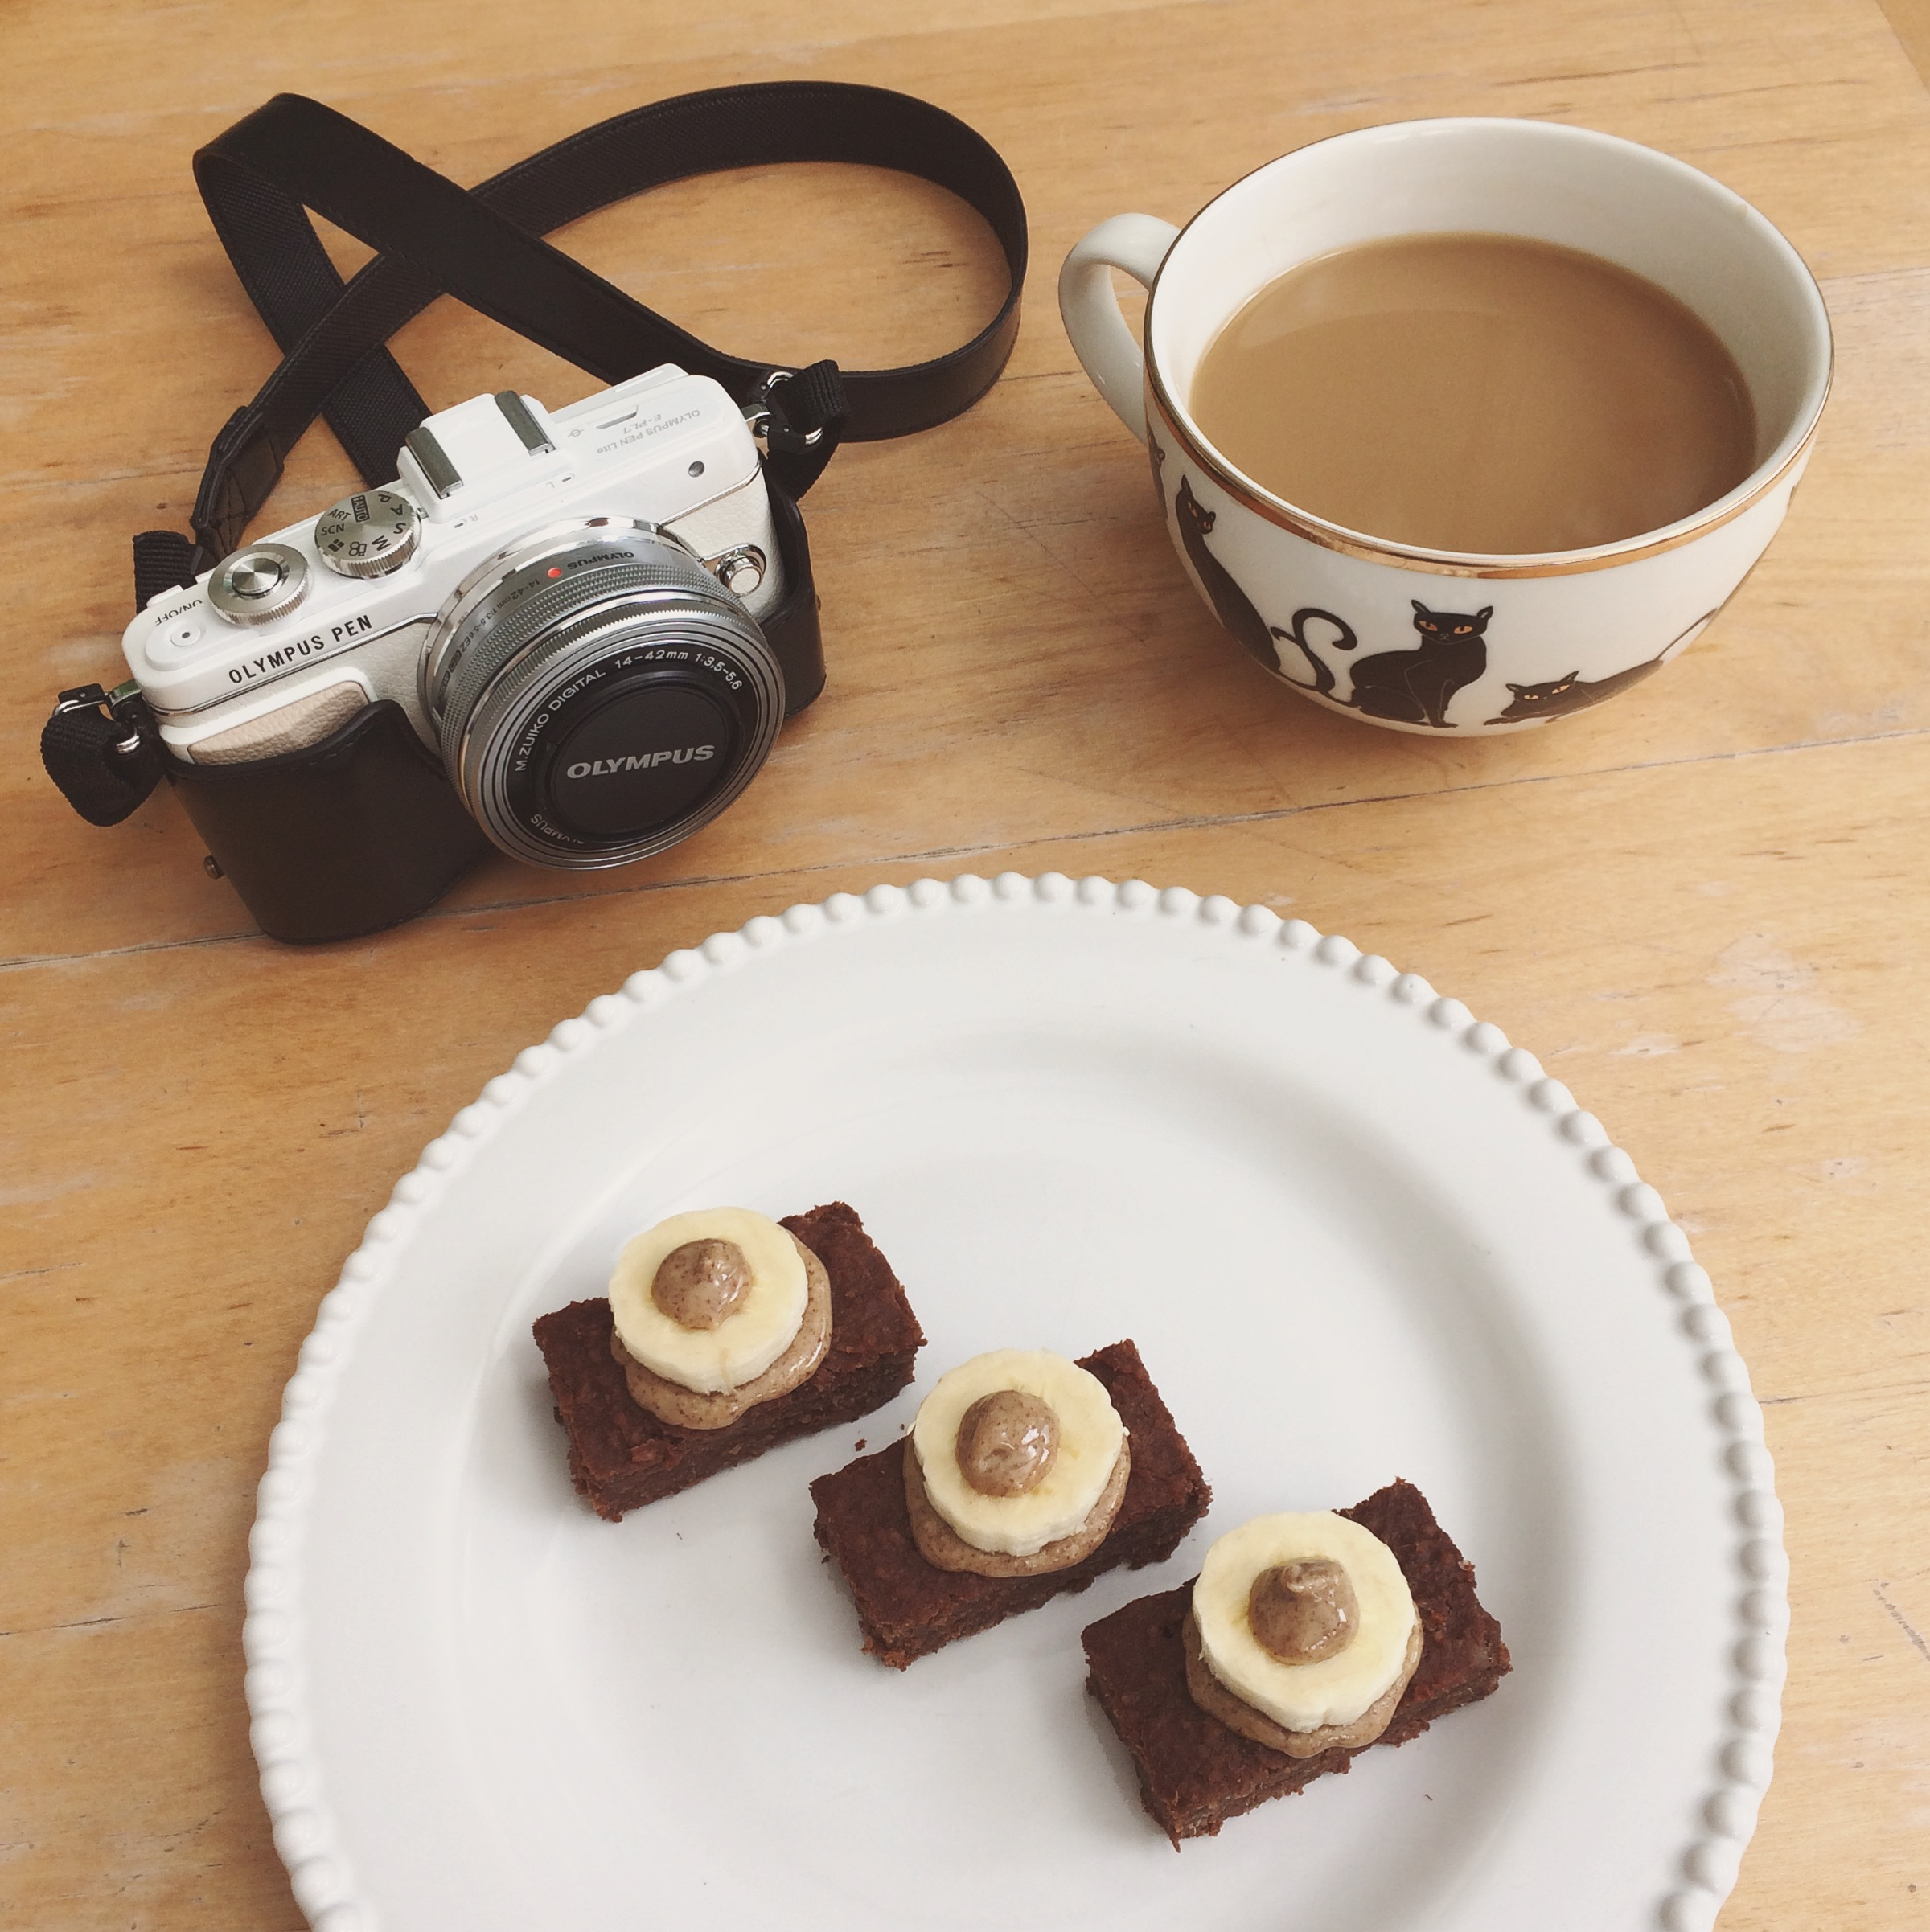 banana-brownies-photo-session